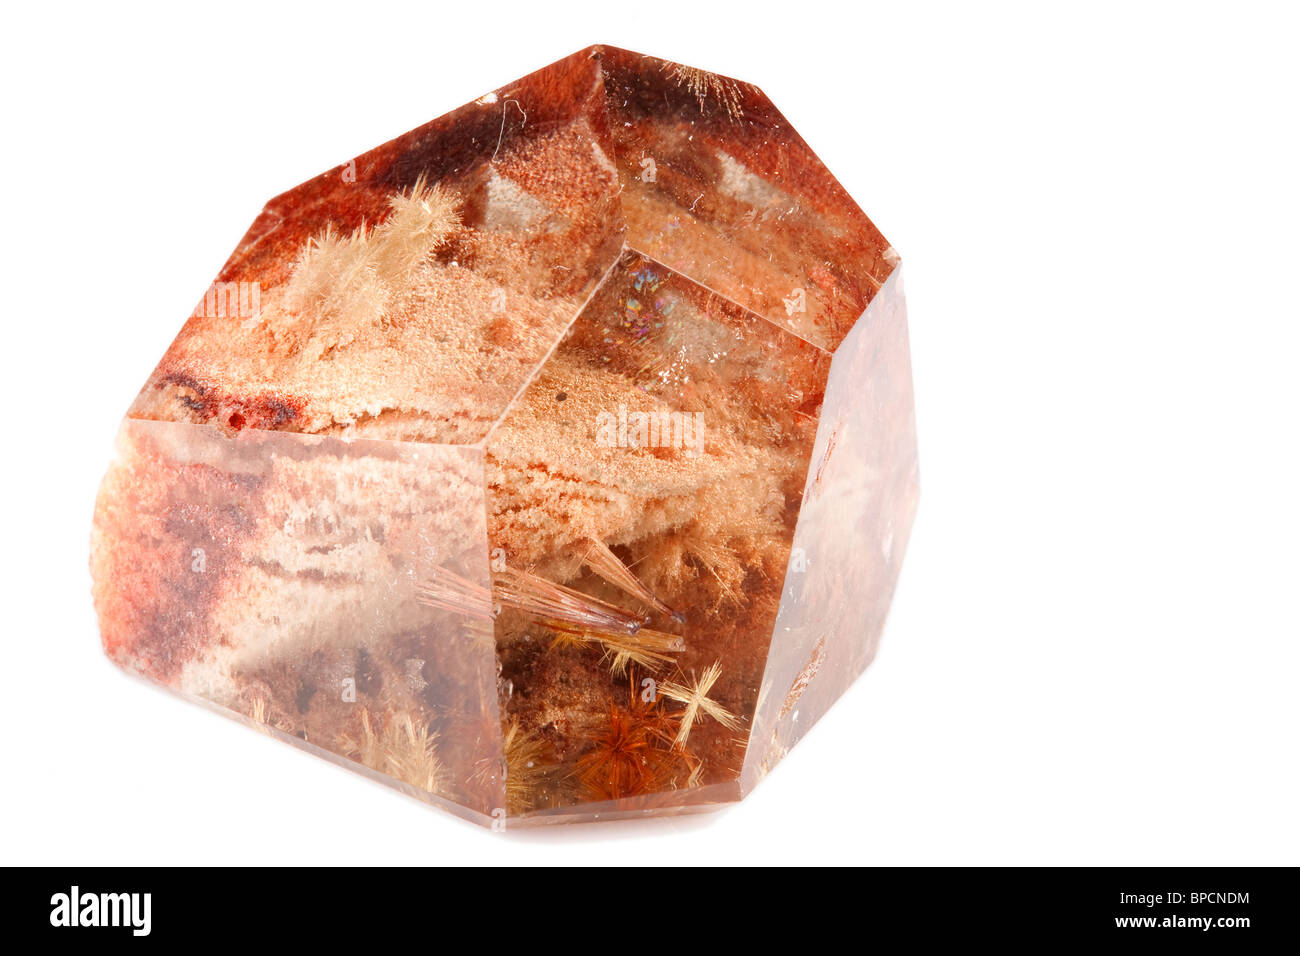 Smoke Quartz Is A Brown To Black Variety Of Quartz Caused Through The Nature Irradiation Of Aluminum Containing - Stock Image